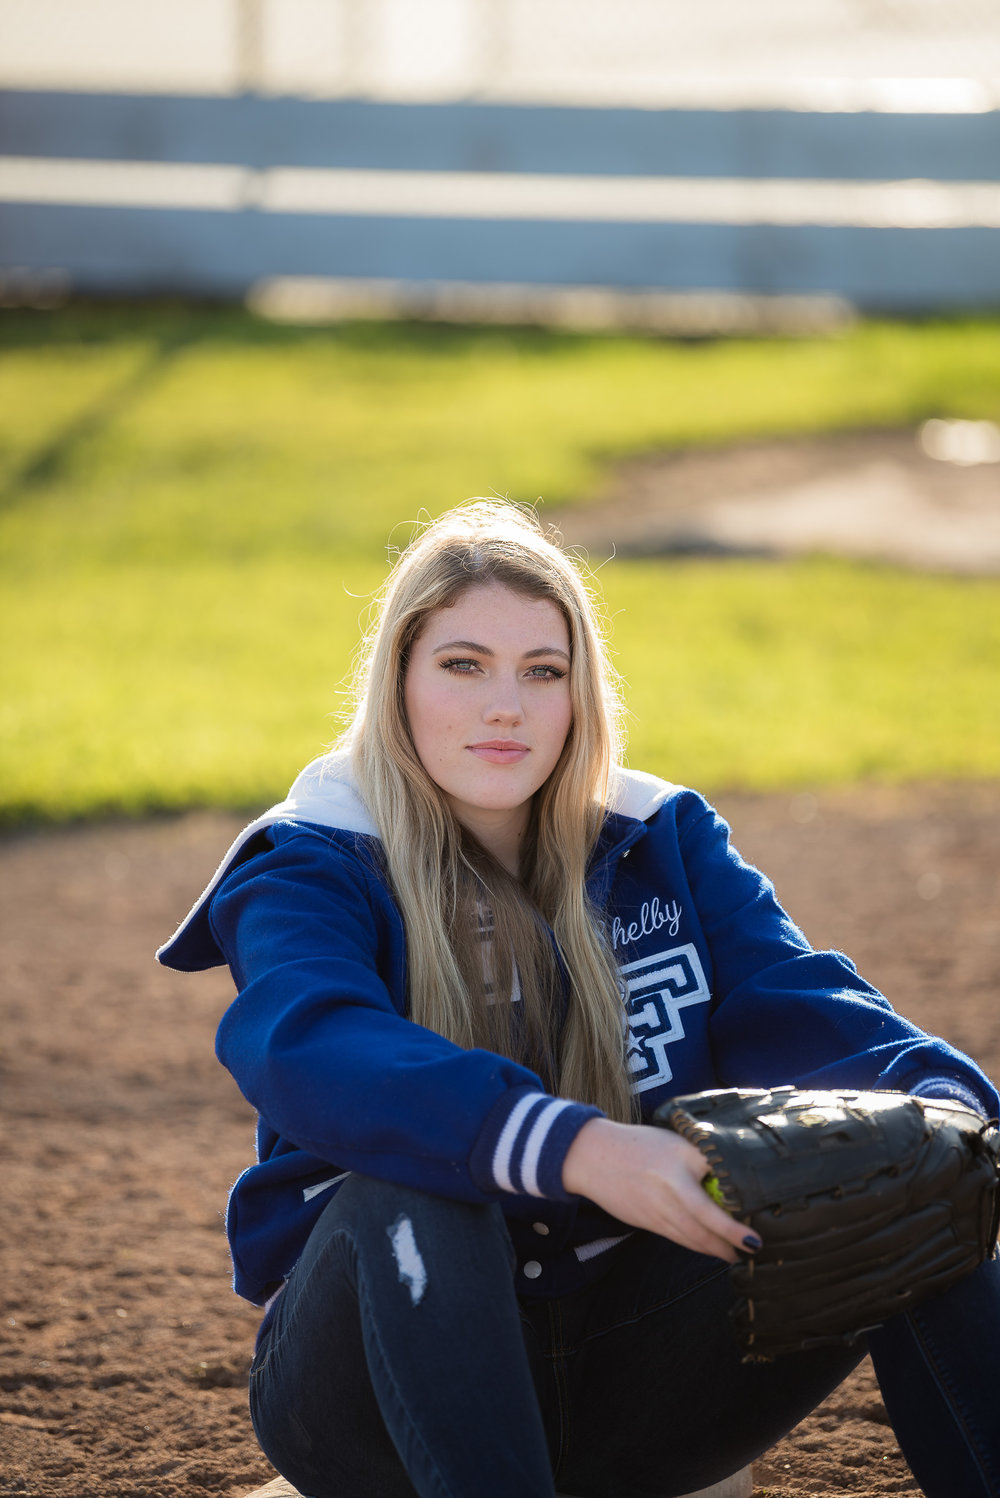 HumboldtCountySeniorPhotographer-Shelby-FortunaHigh-Softball-7.JPG